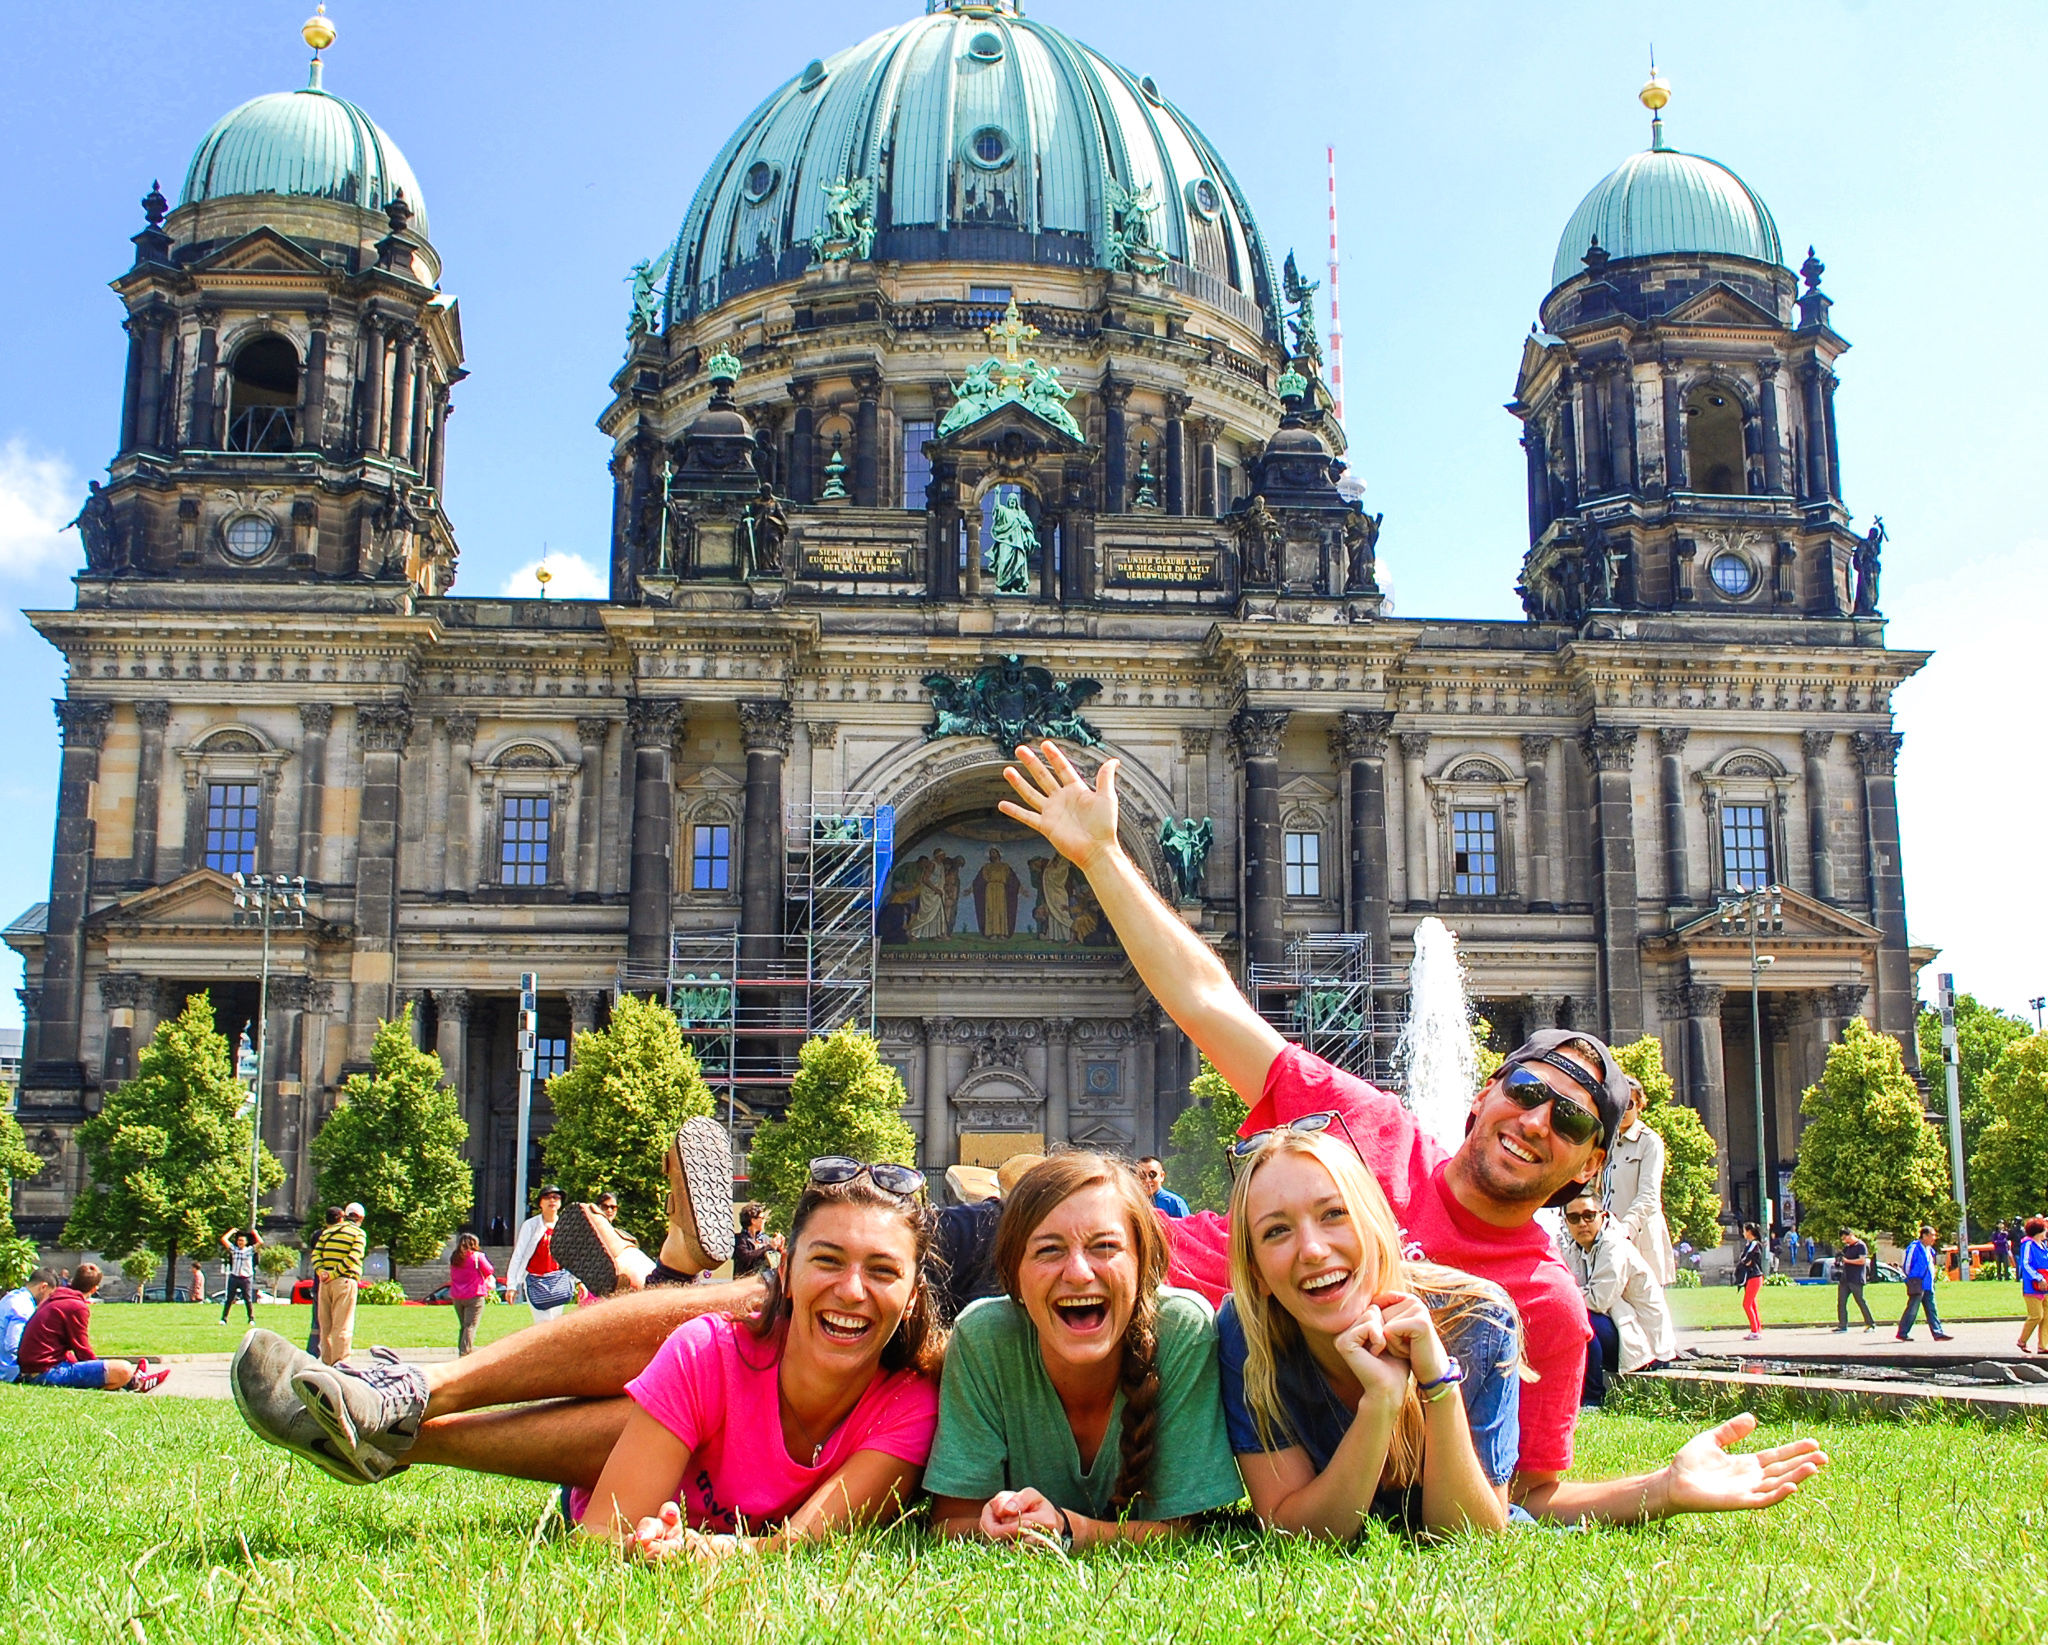 Summer Program - Travel And Tourism | Travel For Teens: Europe for Older Teens - Berlin, Krakow, Vienna and Budapest